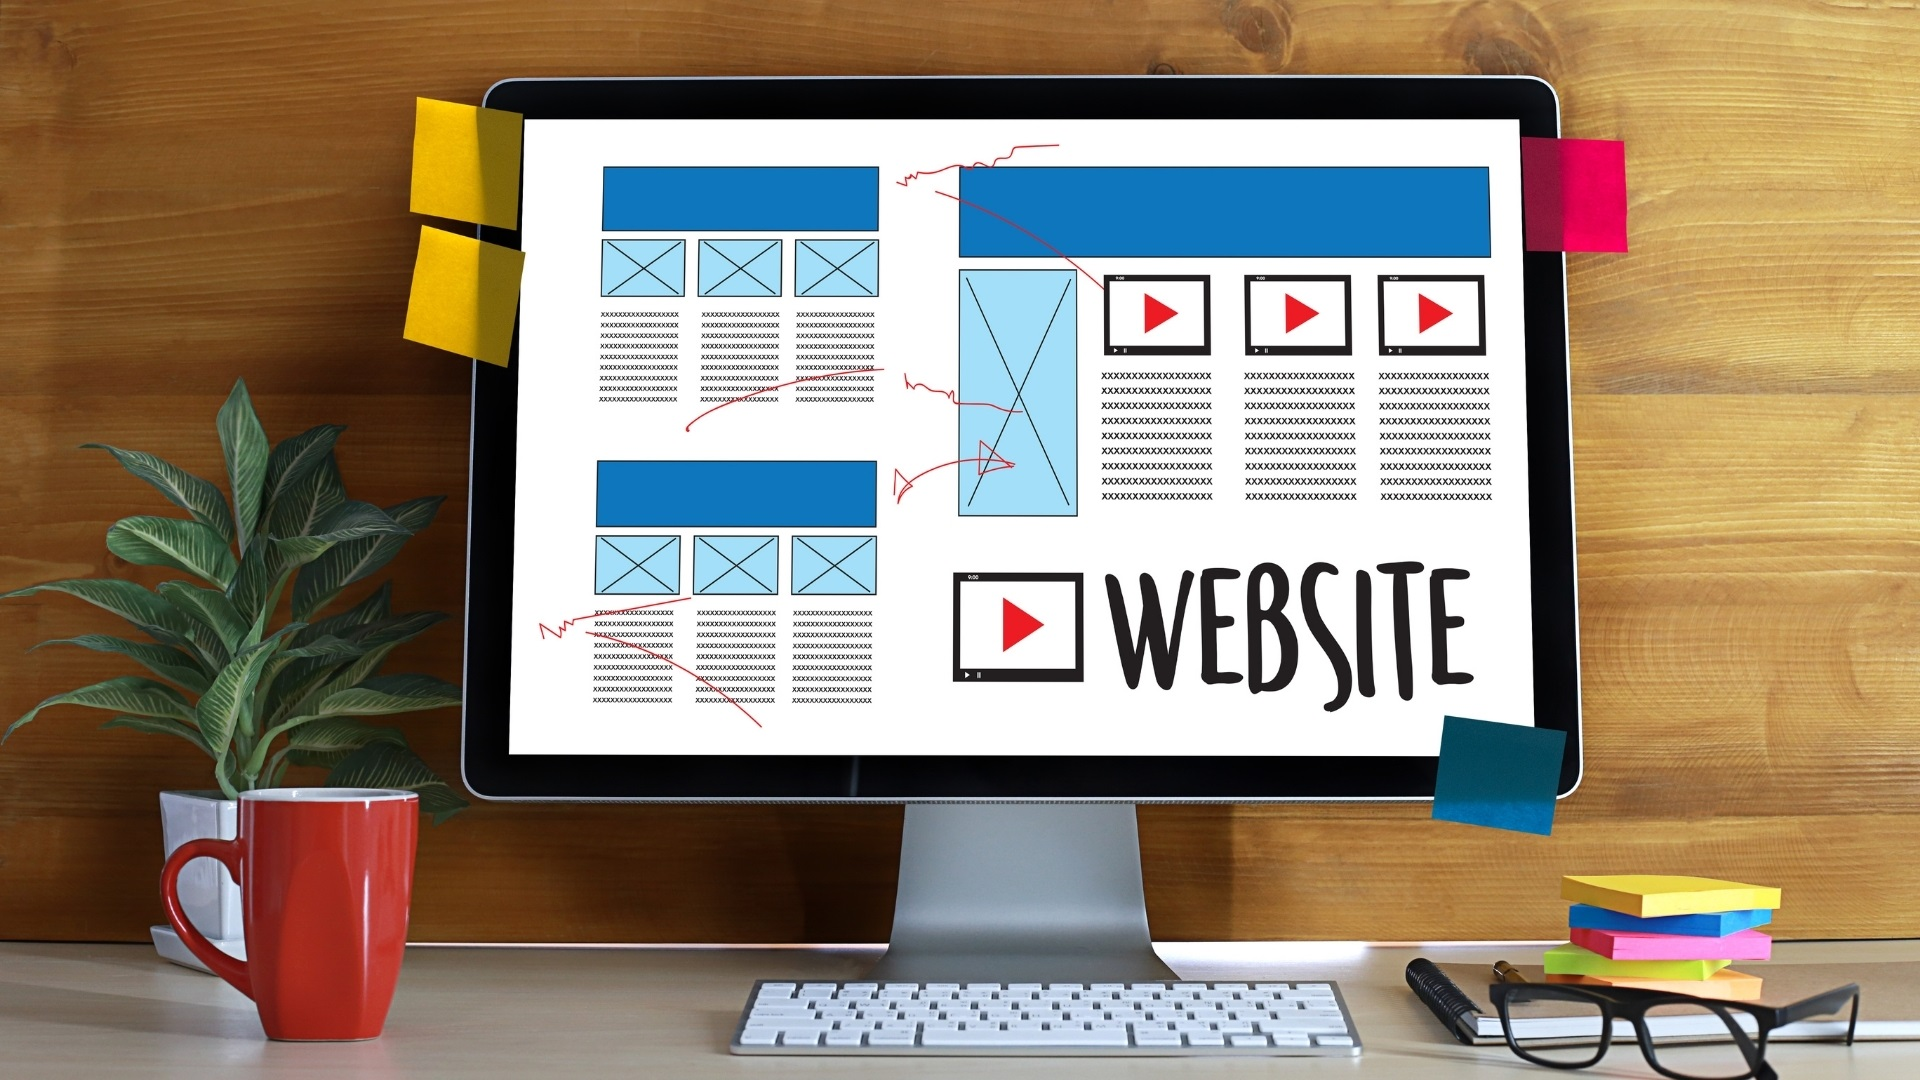 2. Improve your website by cutting down on unnecessary content - Belfast Copywriter Paul Malone